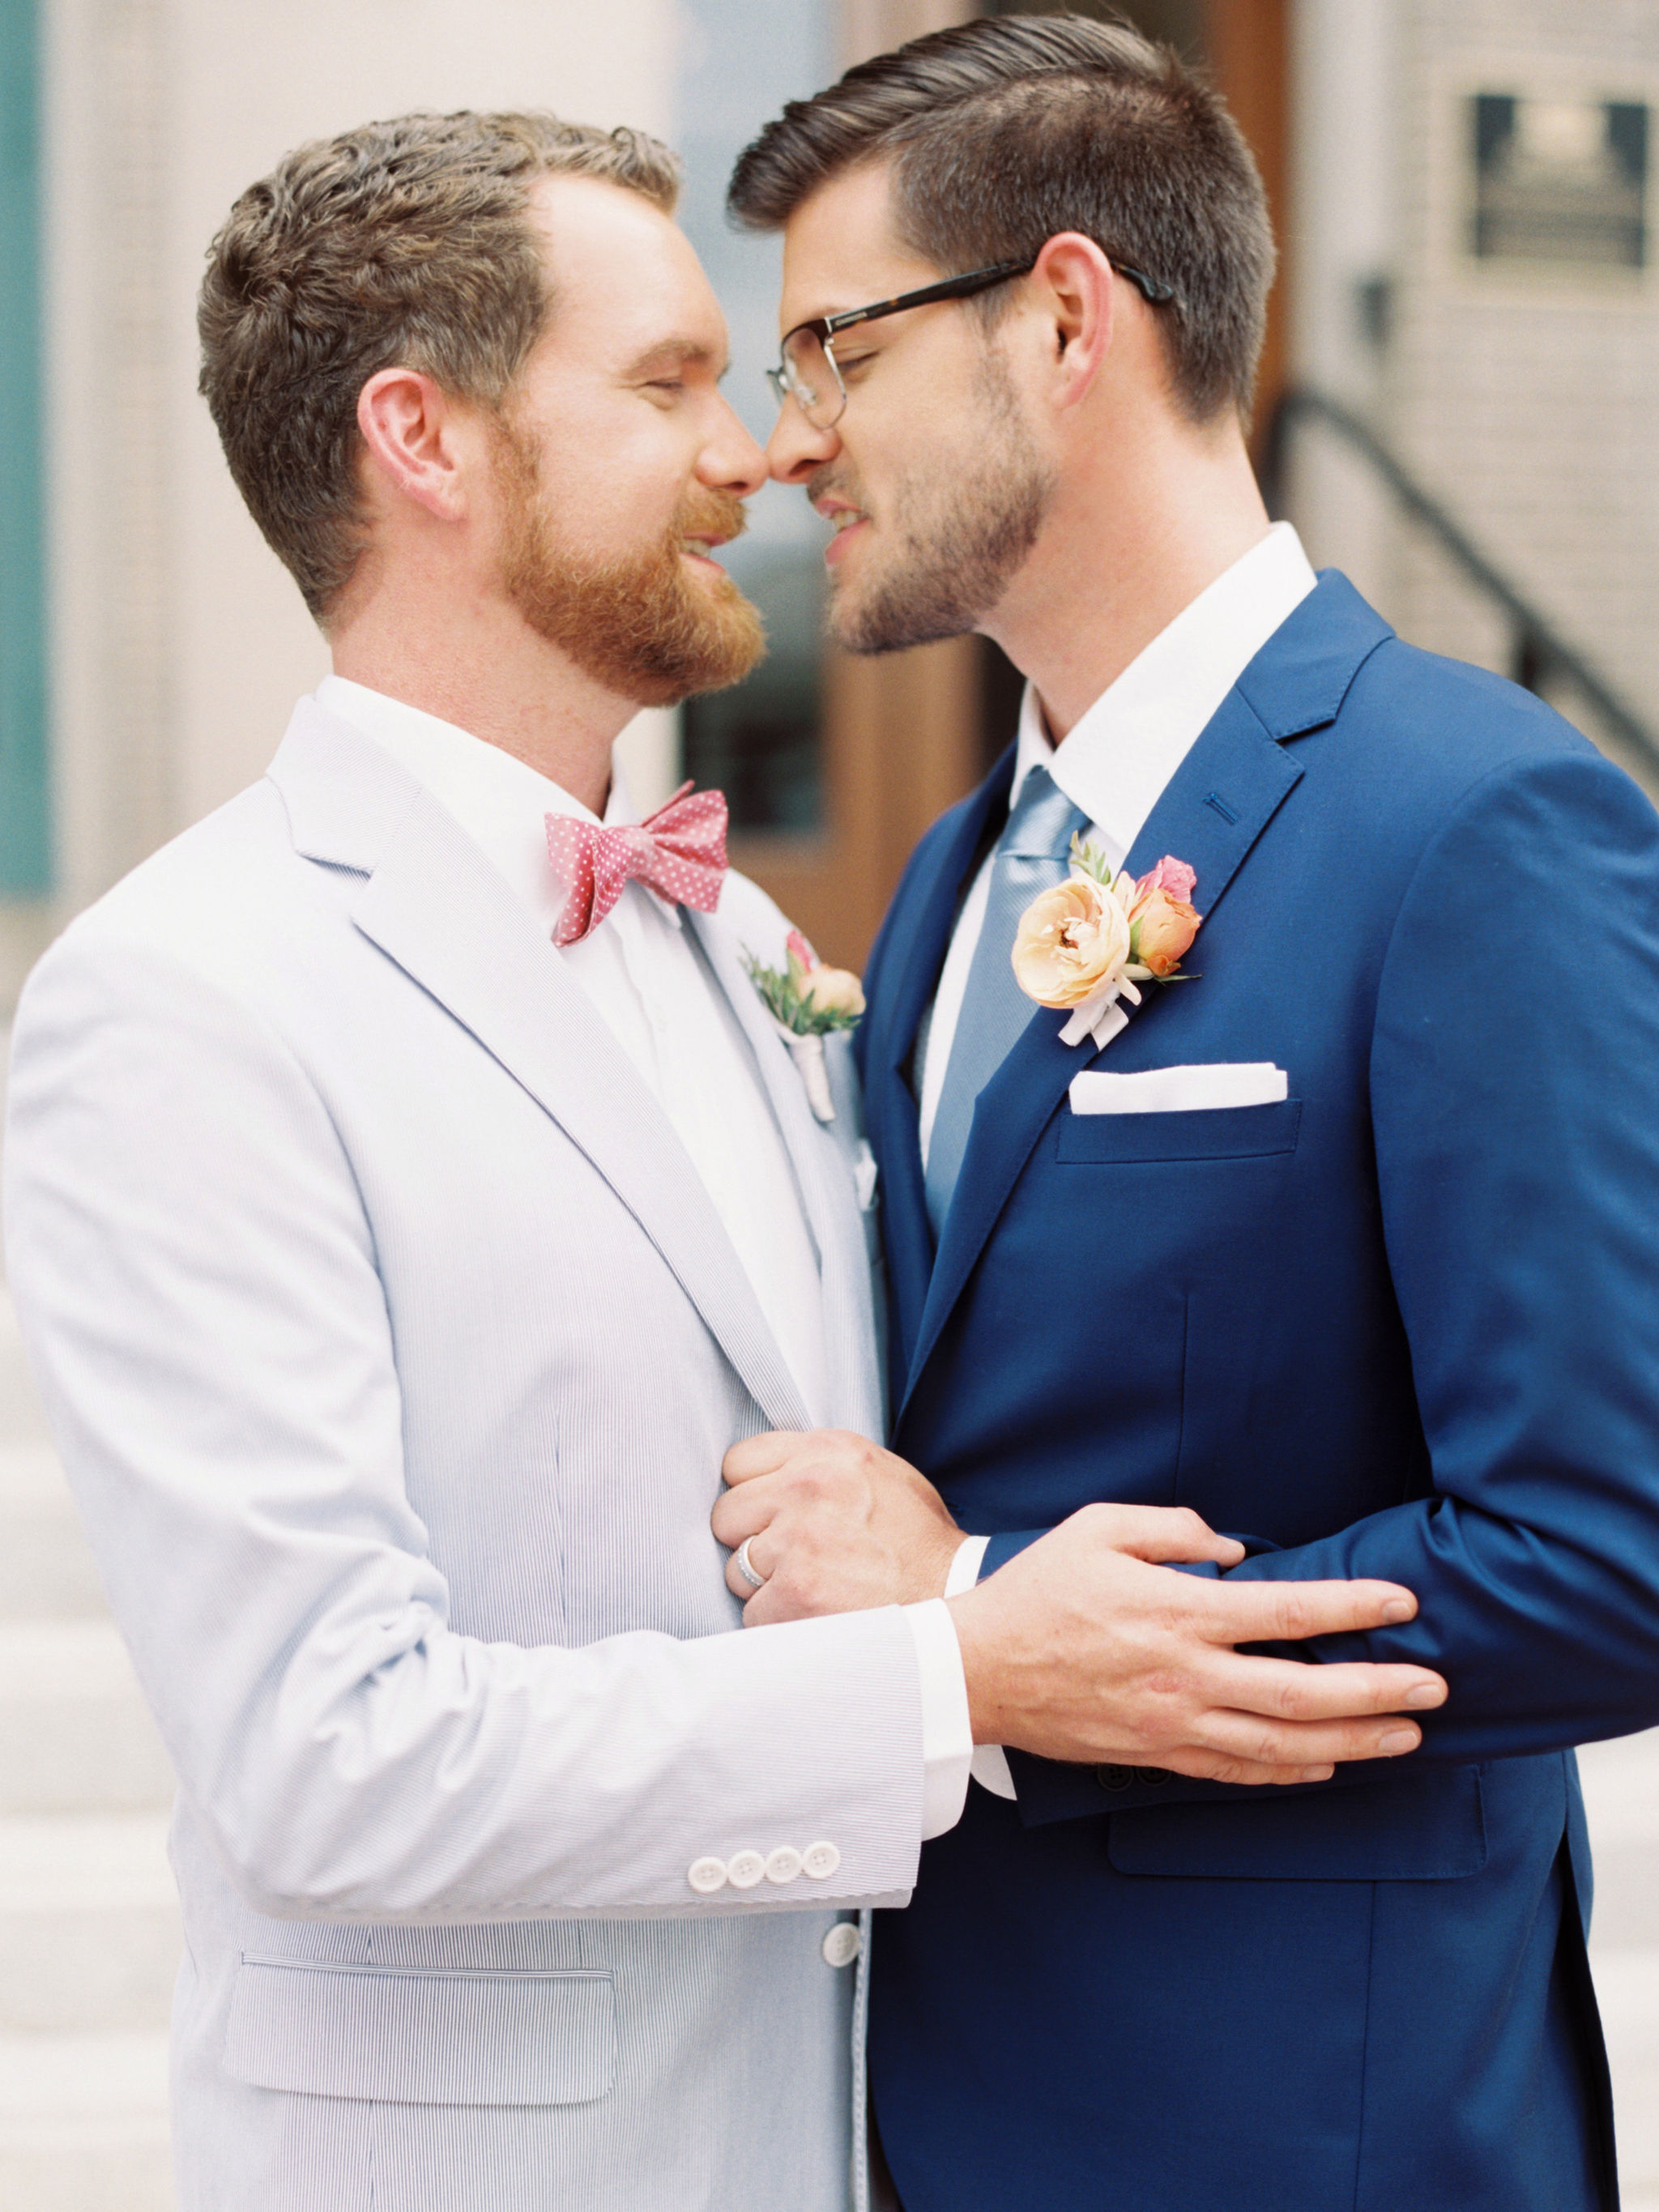 LGBTQ Wedding Photo Inspiration